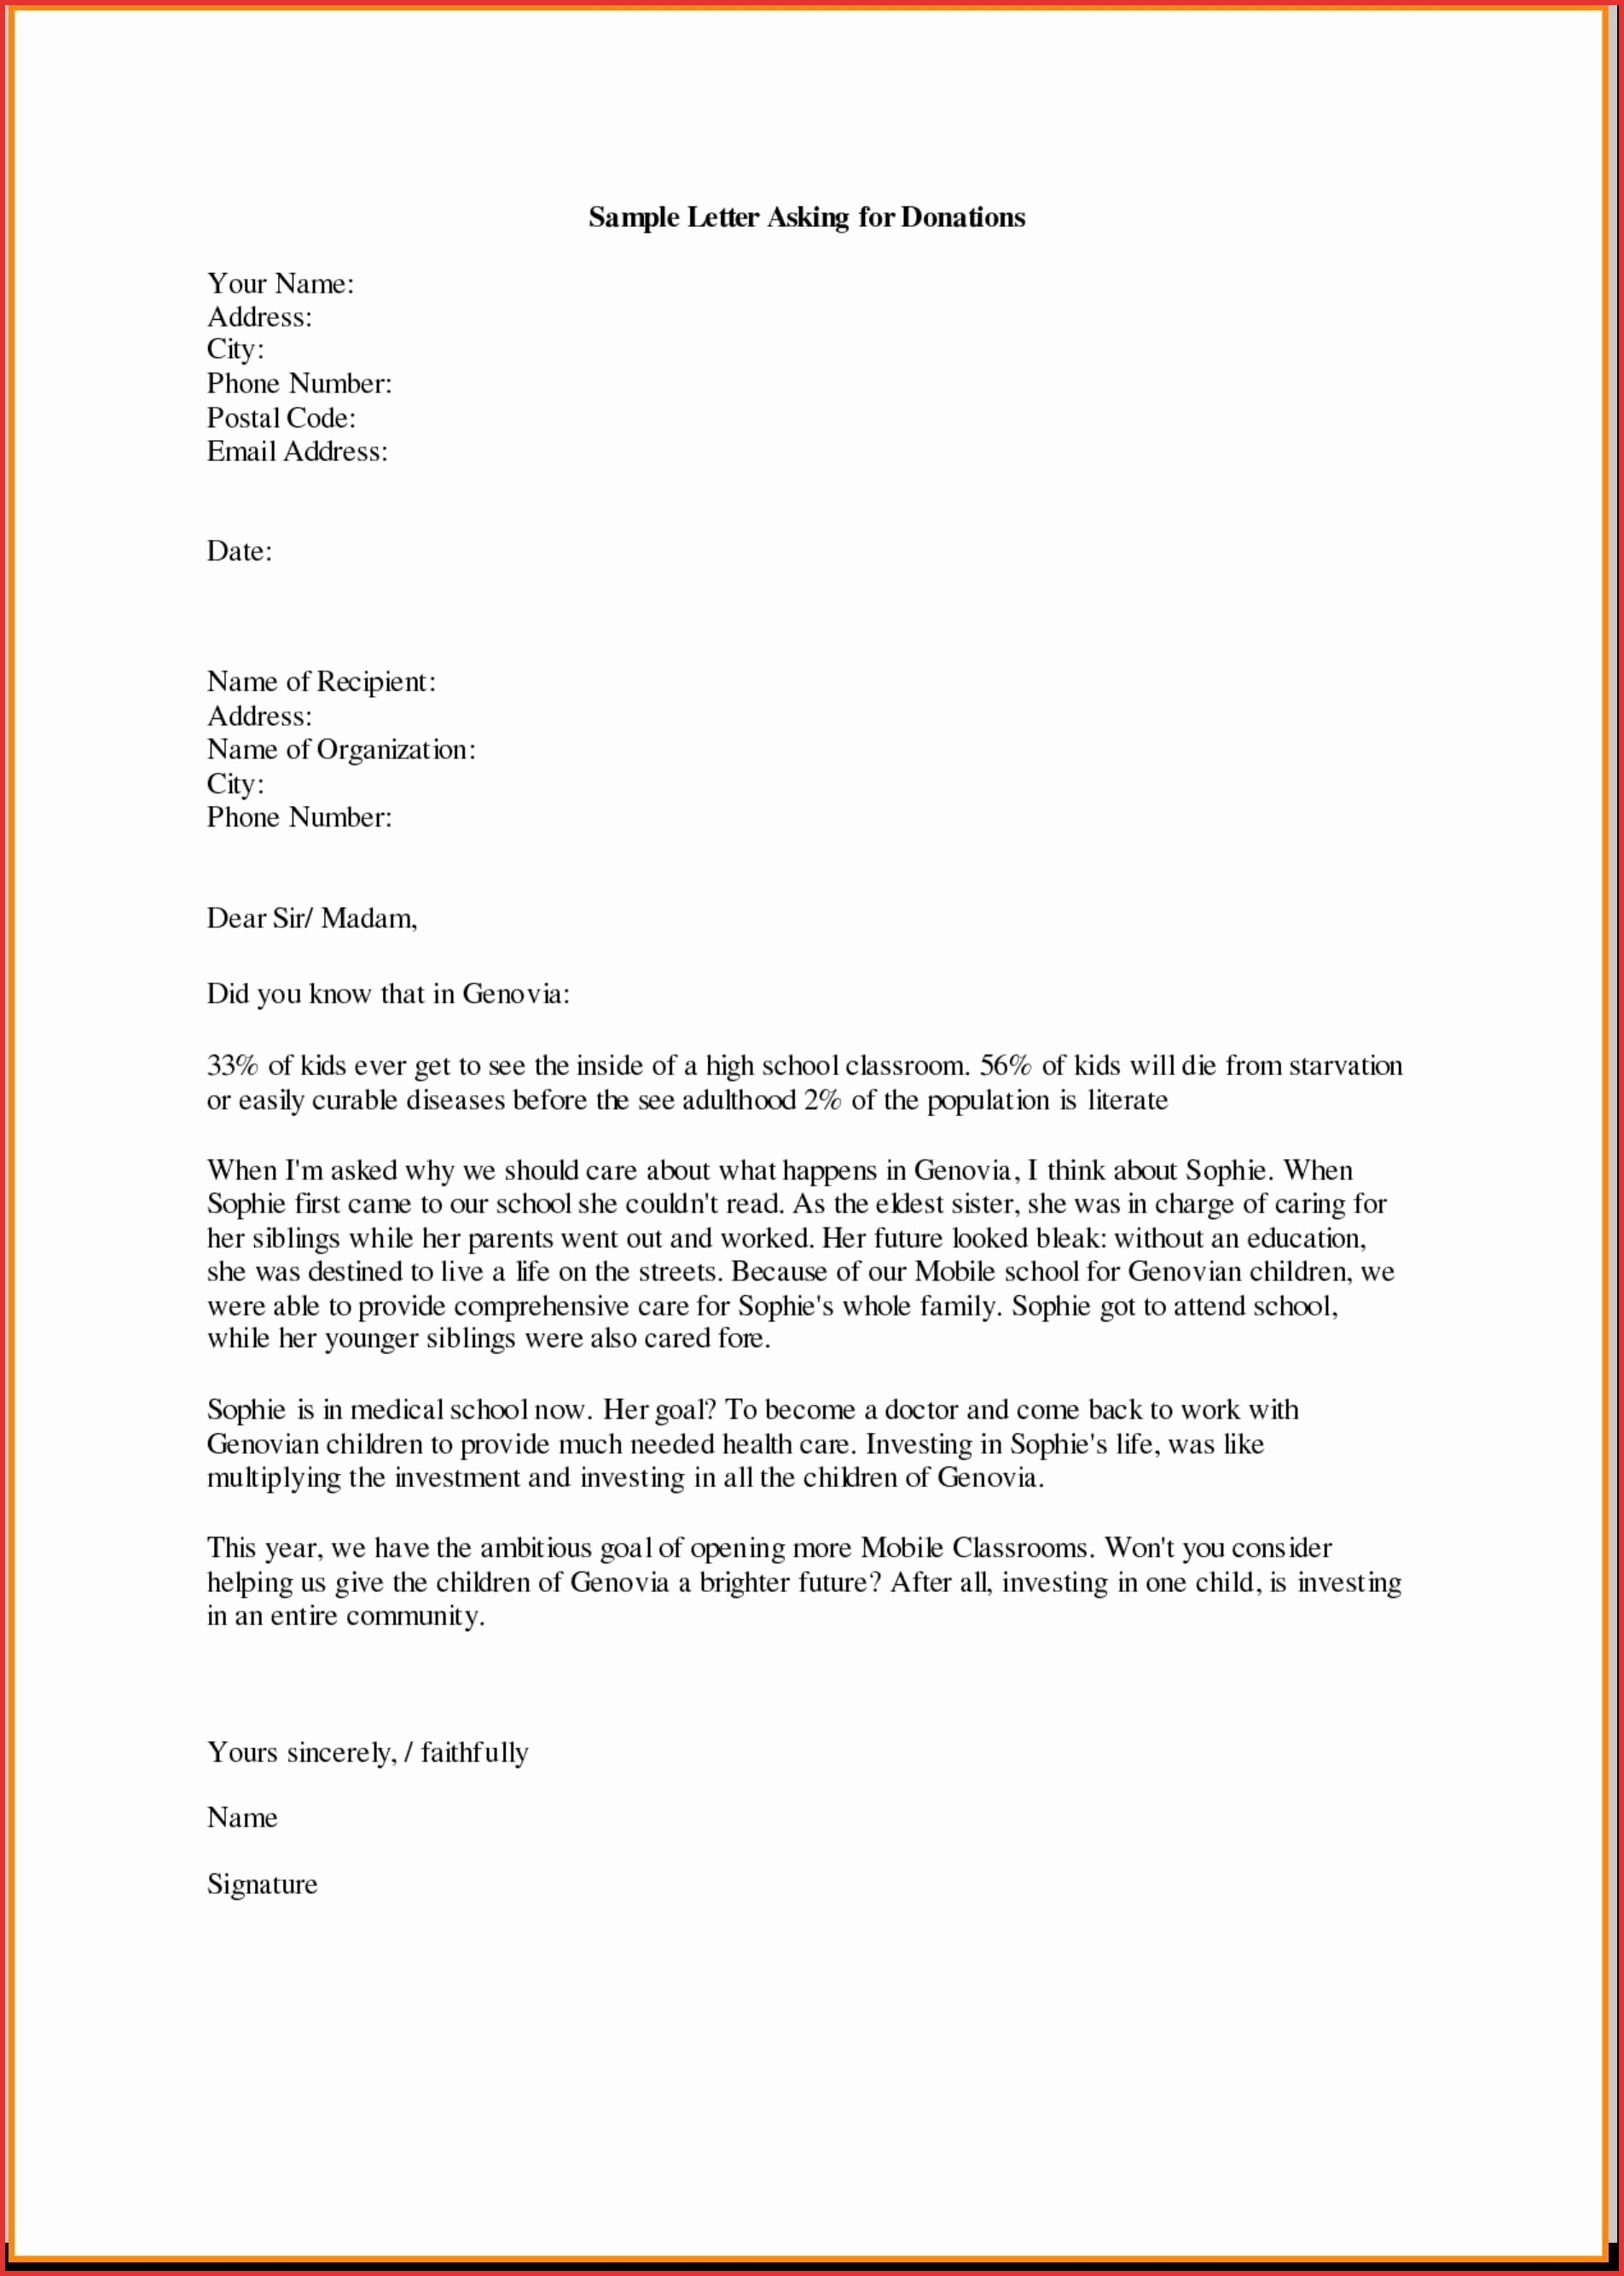 Donation Request Letter Template - Sample Donation Request Letter for School Best Business Donation